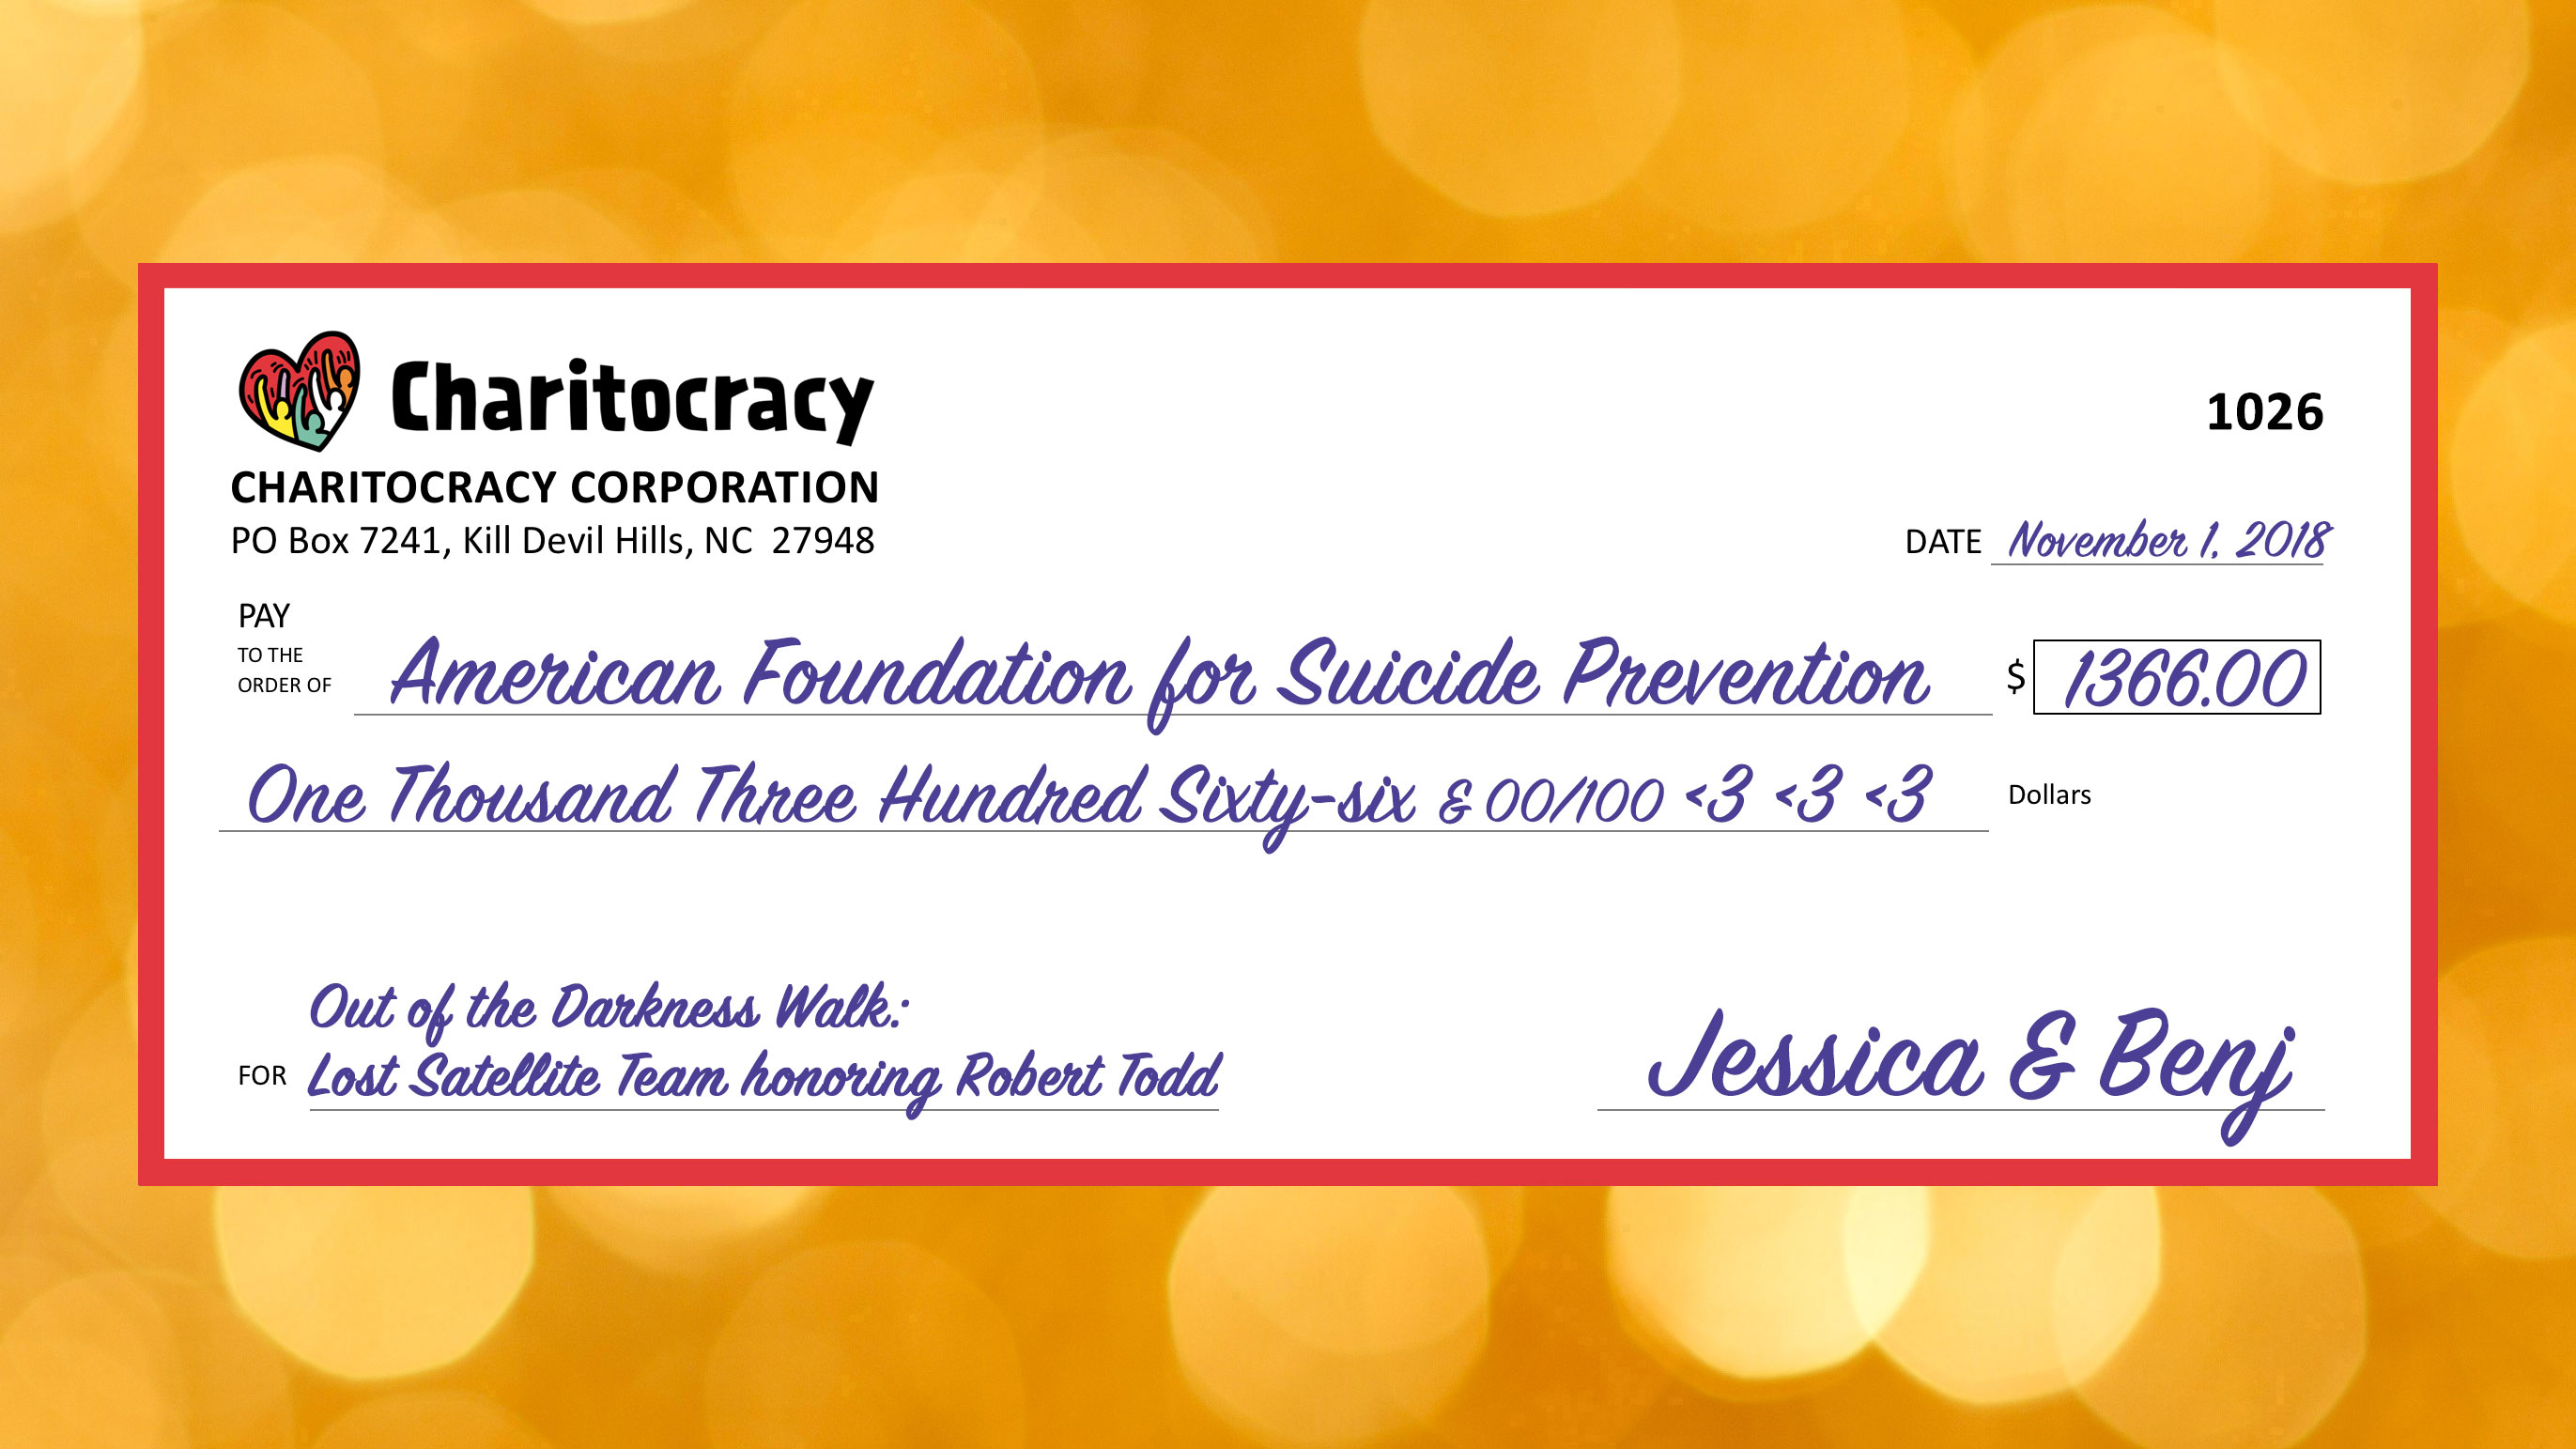 Charitocracy's 26th check: to American Foundation for Suicide Prevention for $1366